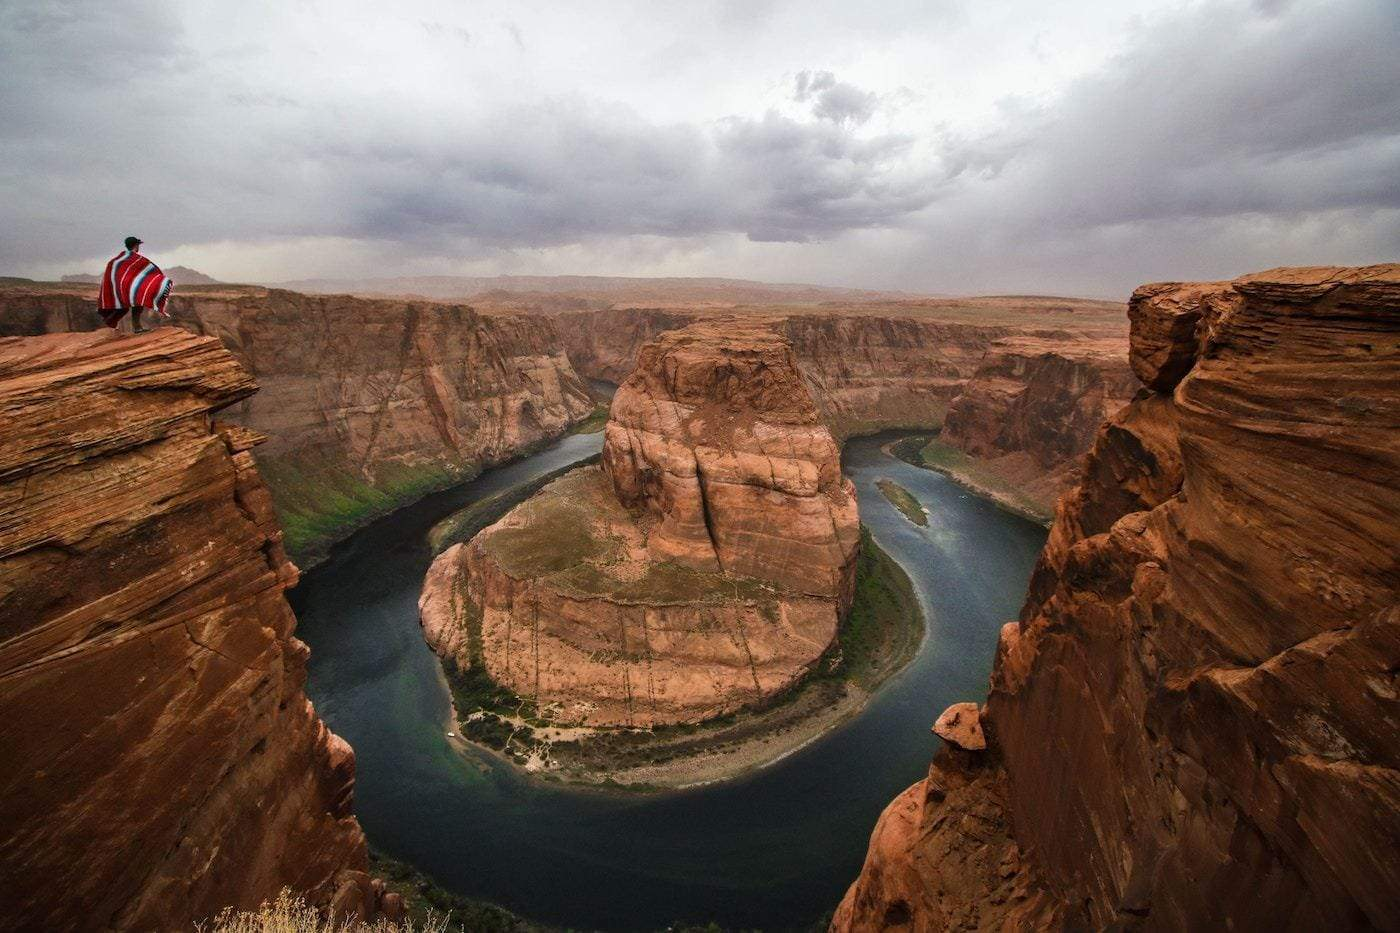 Person looking out at Horseshoe Bend in Grand Canyon, landscape